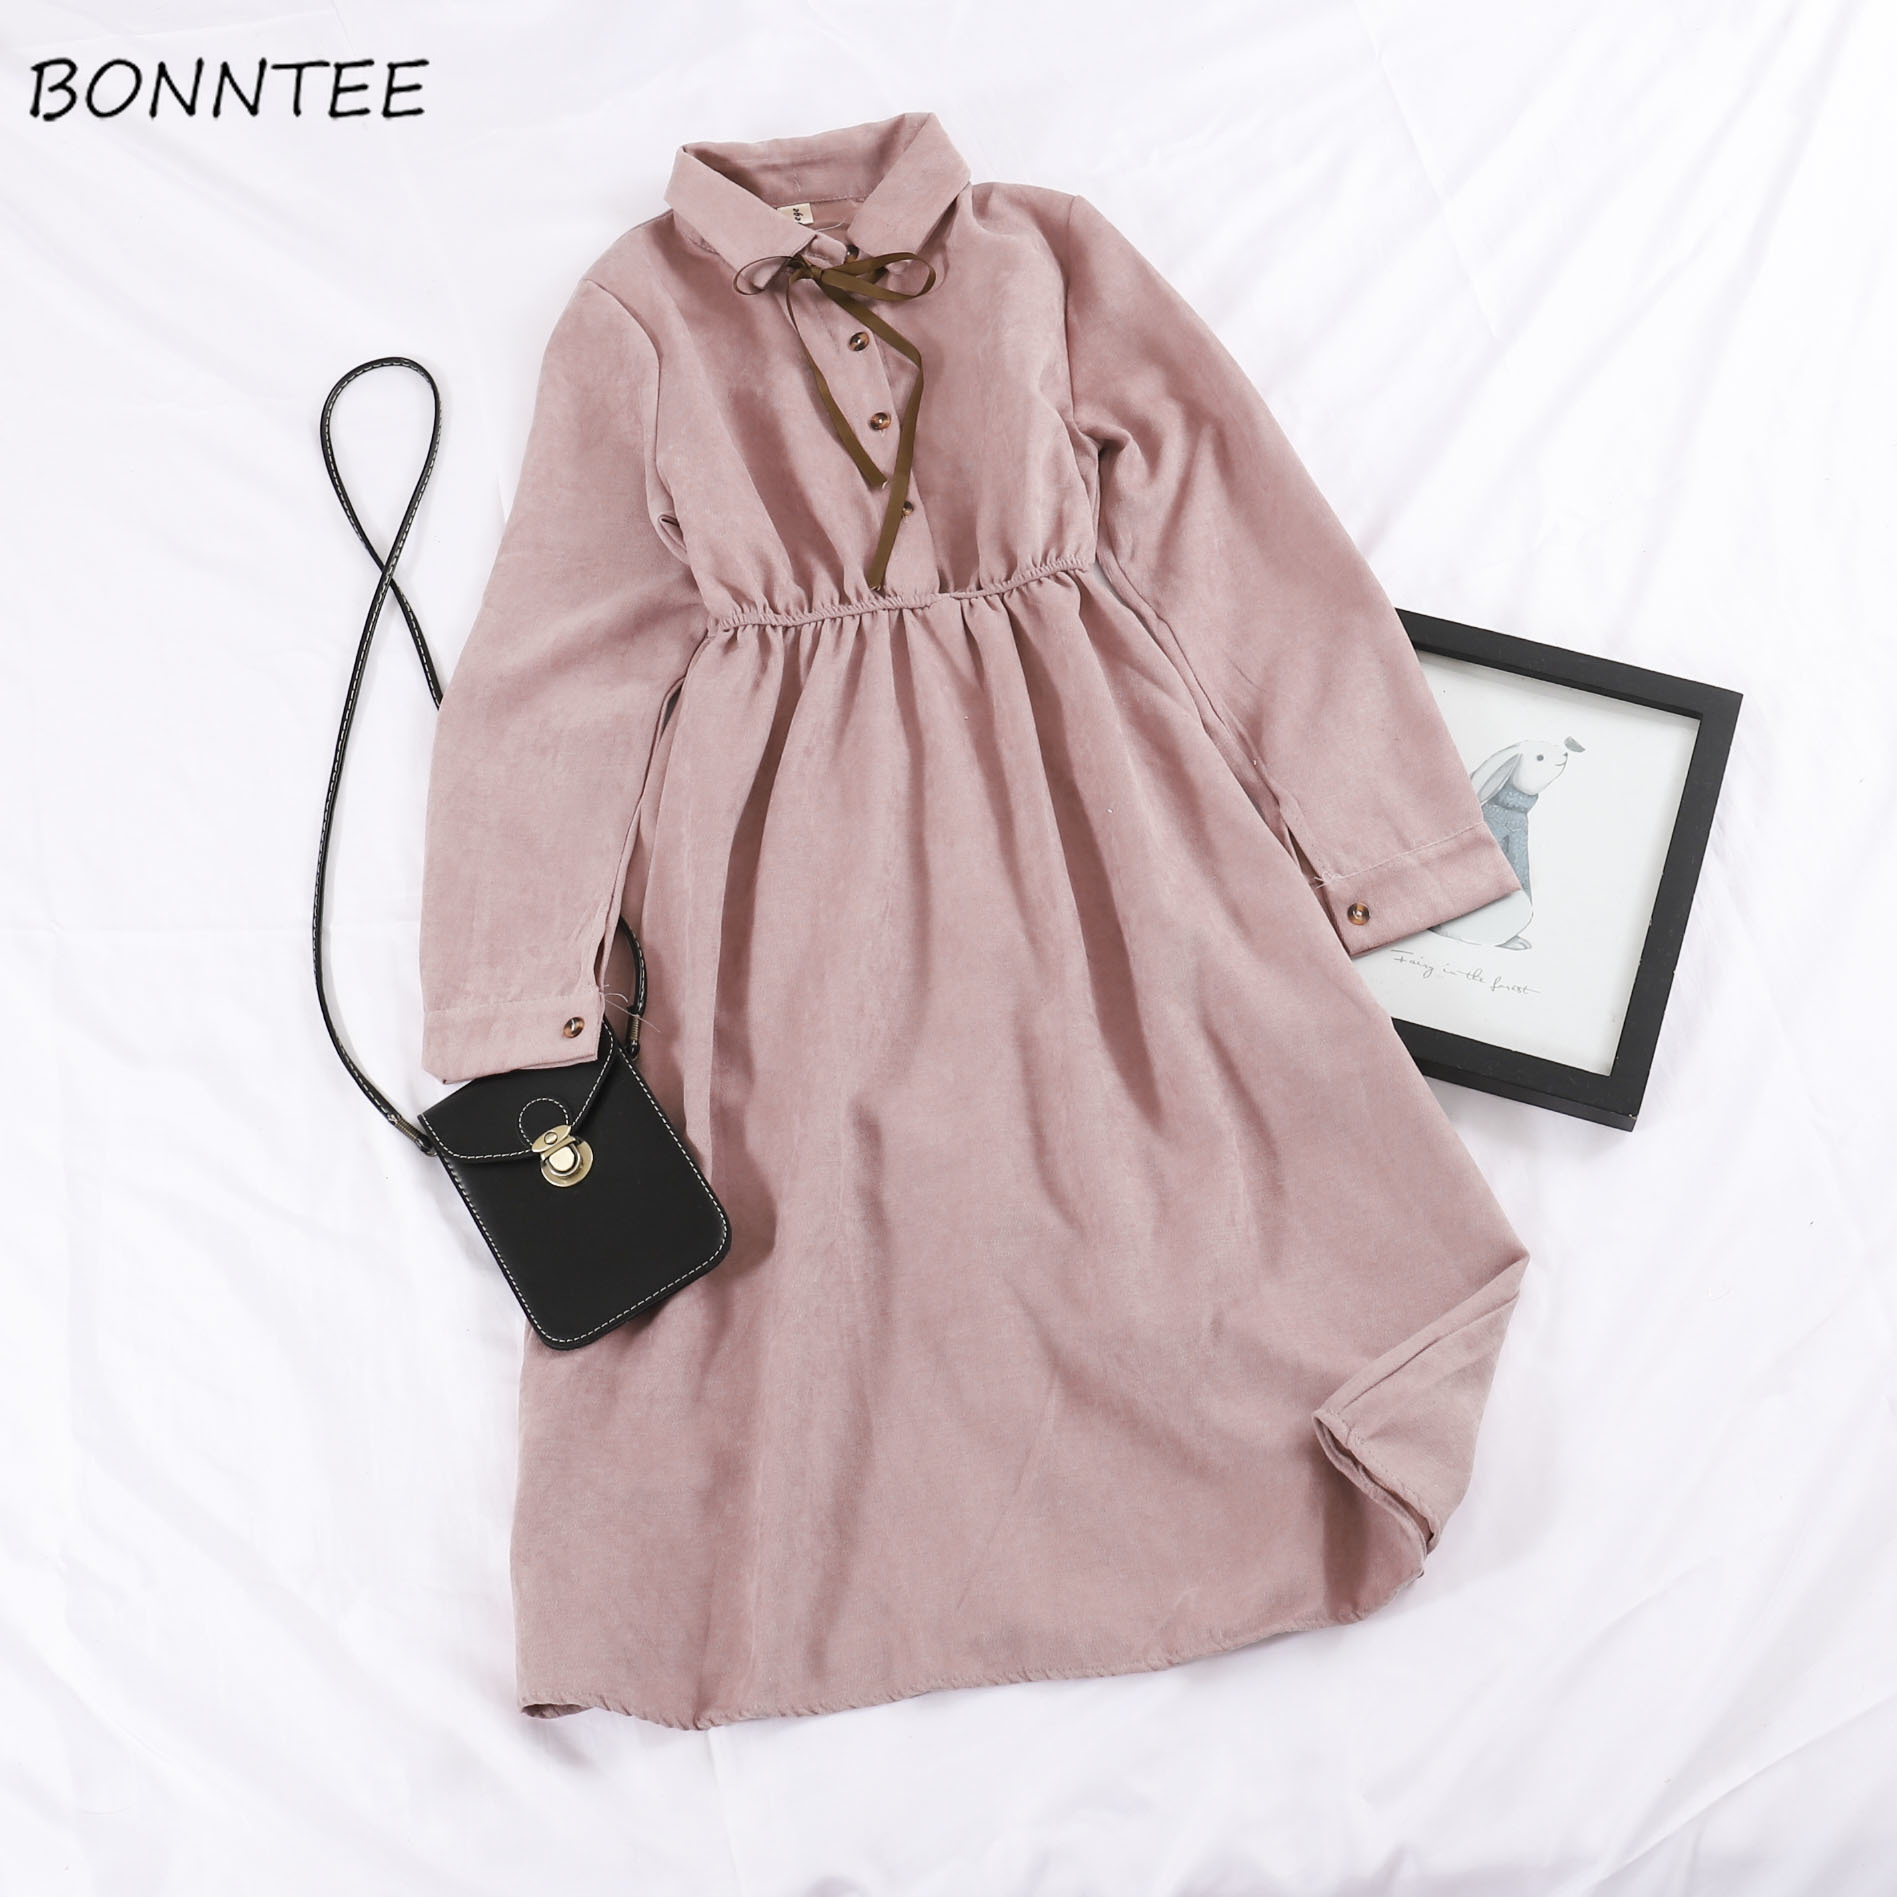 Long Sleeve Dress Women Solid Bow Buttons Elegant Sweet Girls Womens Clothing Korean Style Harajuku All-match Student Streetwear